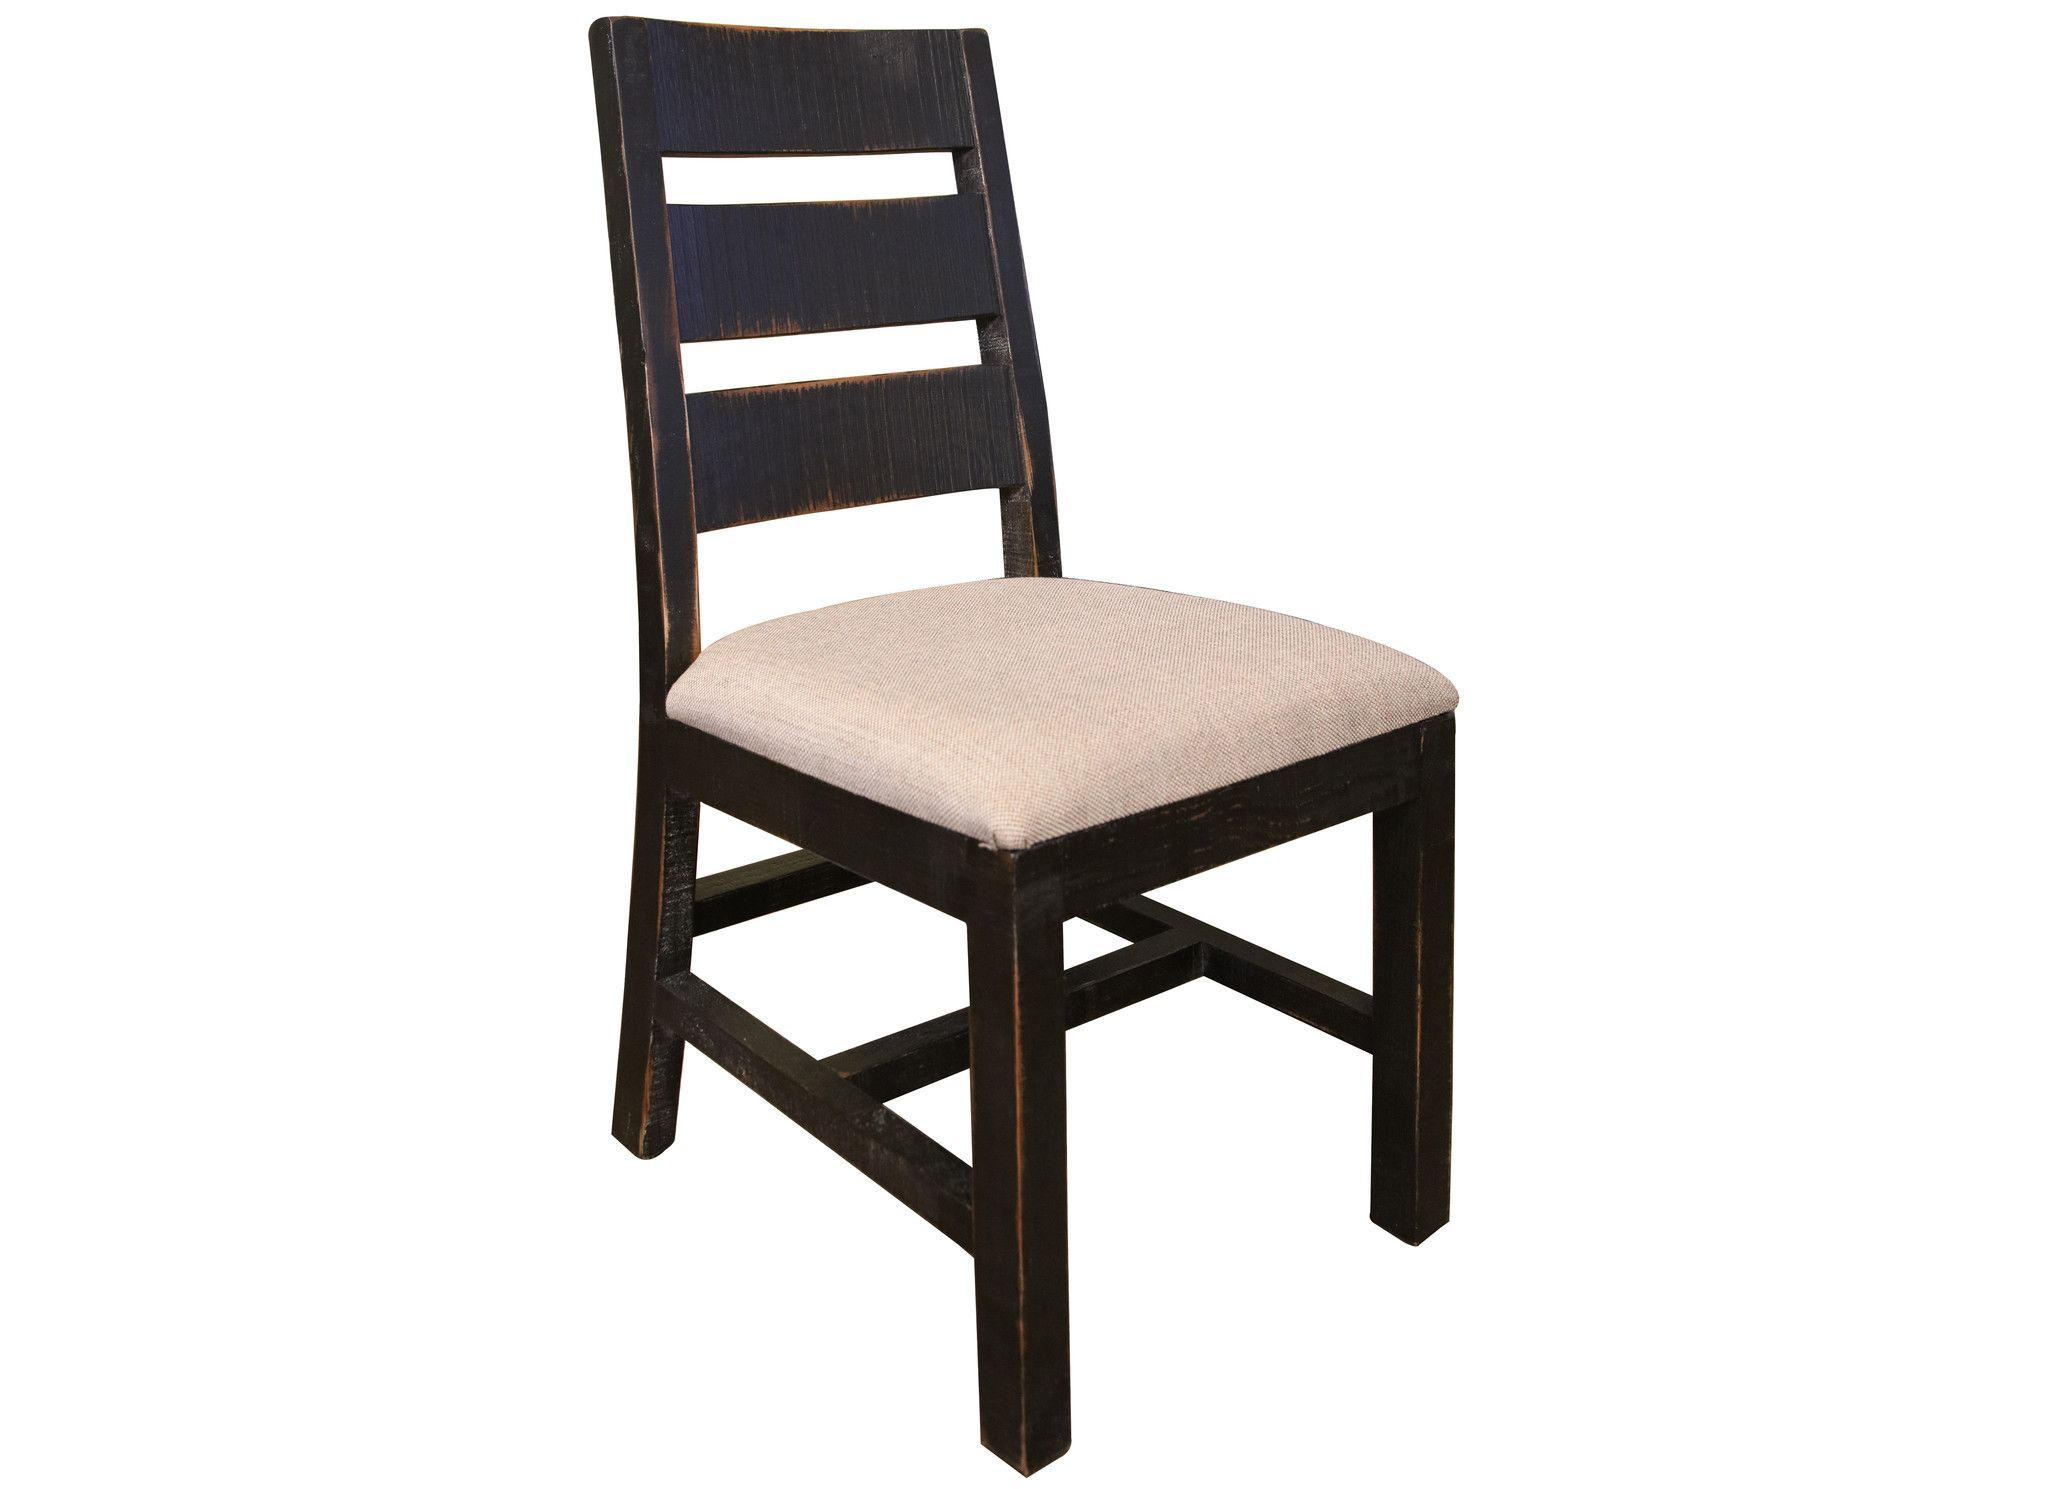 Bayshore Distressed Black Dining Chair #370 | Products